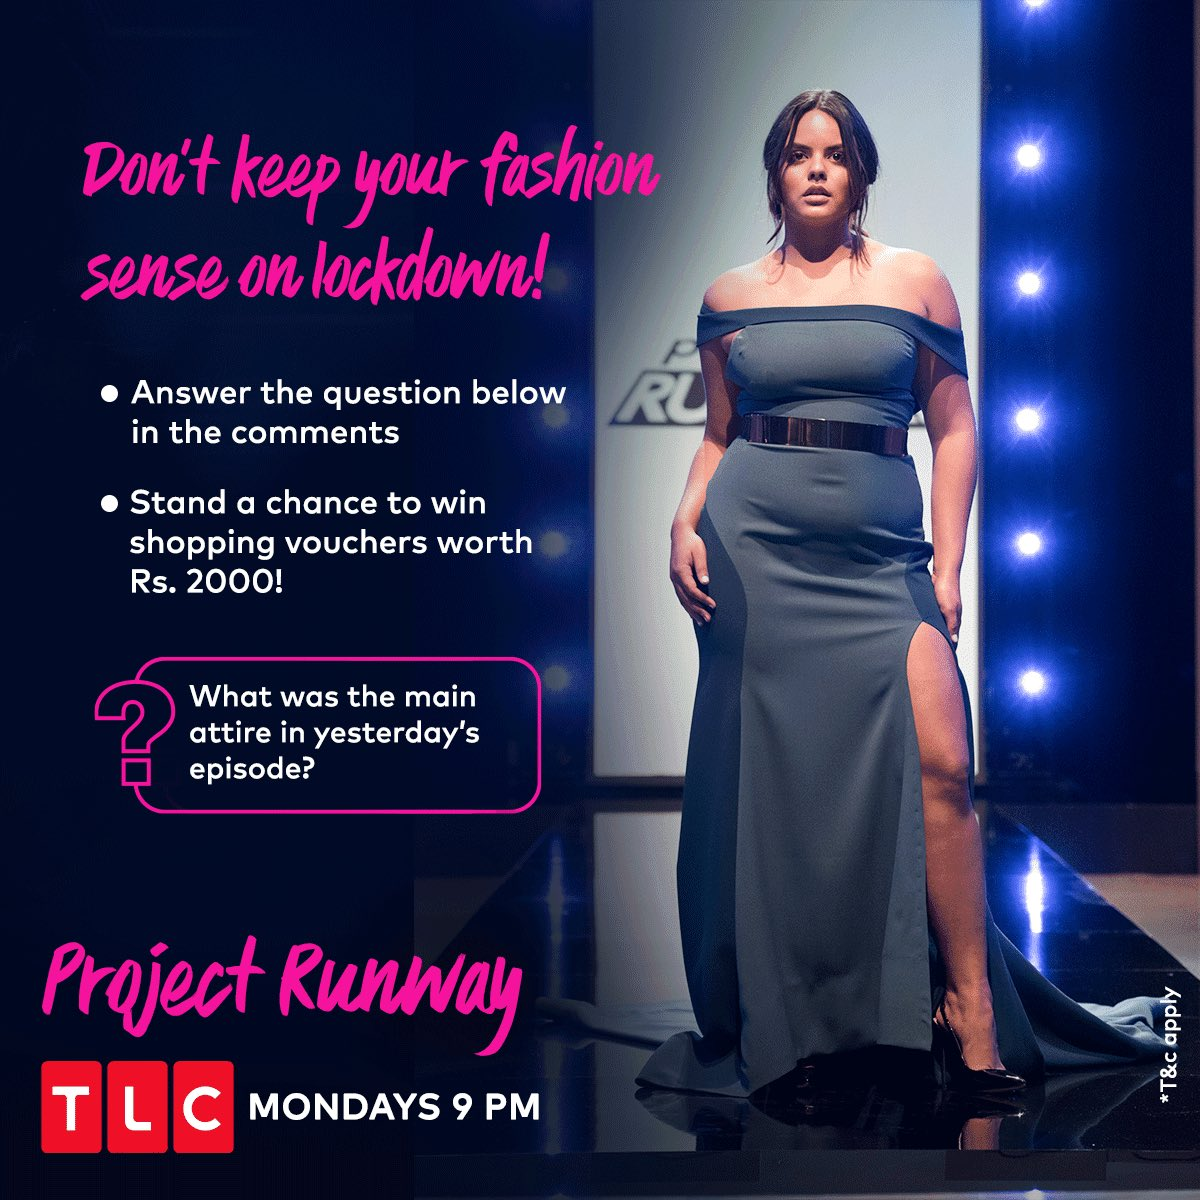 #ContestAlert Set the shopaholic in you loose #TLCFashionProject! Simply answer the above question by watching Project Runway on #TLCIndia and stand a chance to win shopping vouchers worth Rs. 2000. Keep your eyes peeled! #TLC #TLCFashionProject https://t.co/dwPLo9gql3